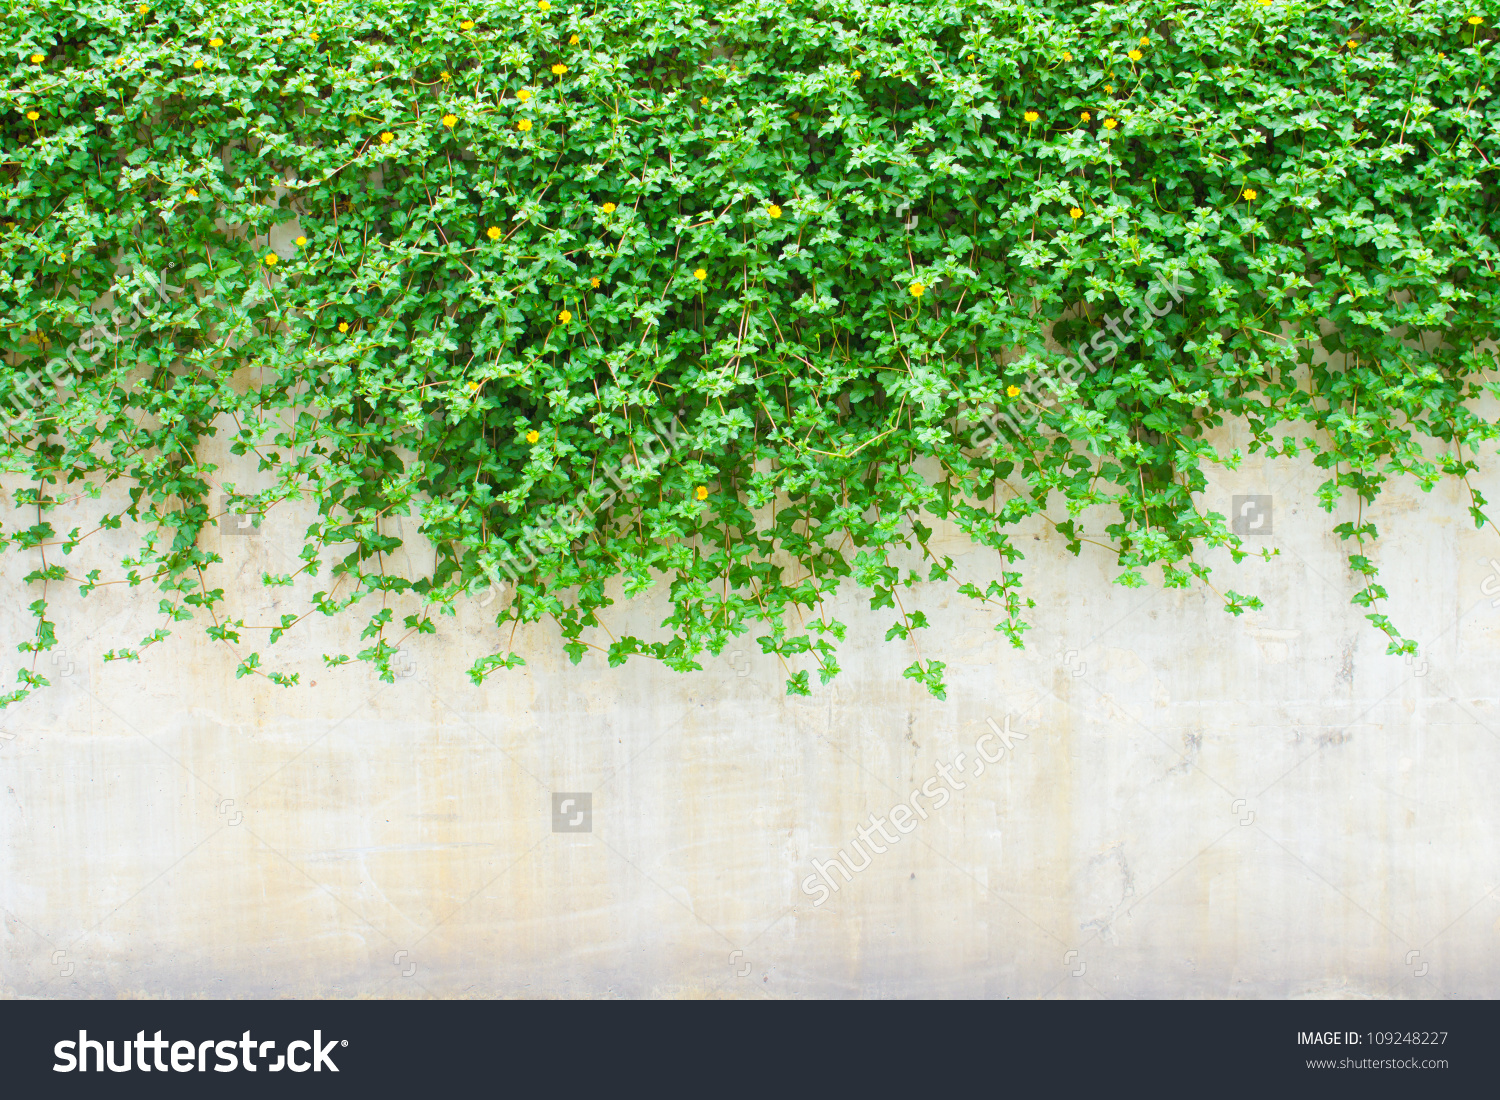 Wall plant clipart Clipground